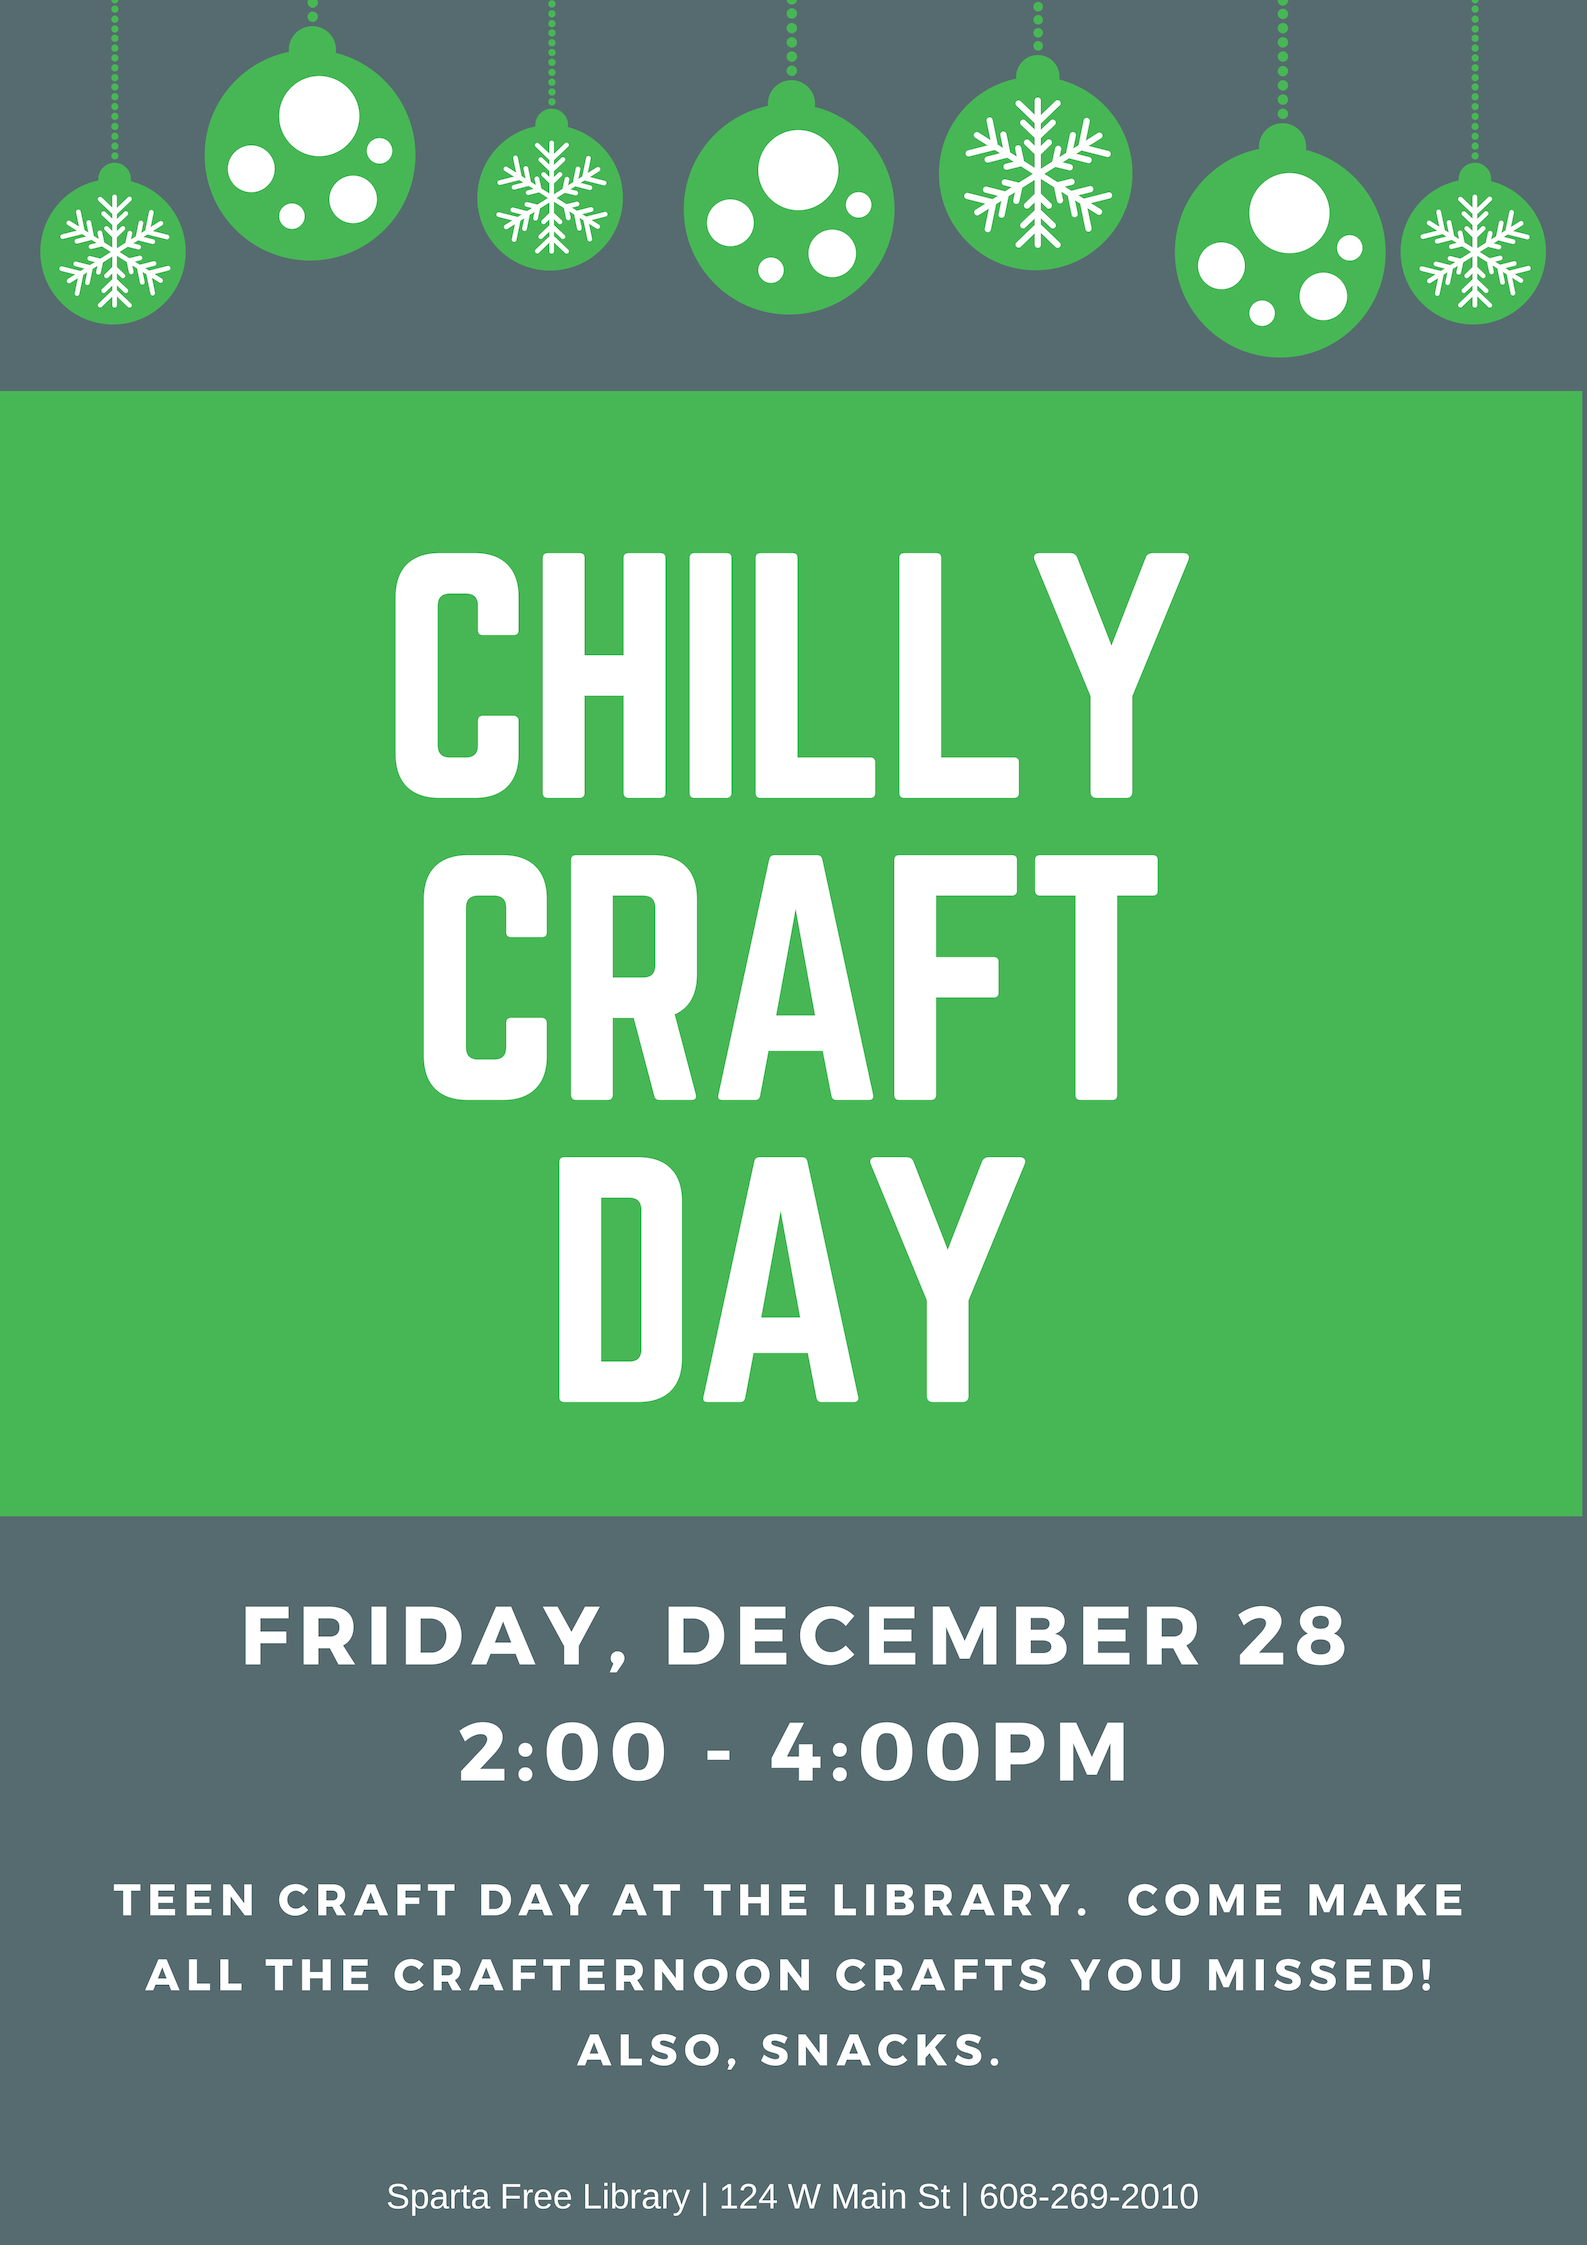 Chilly Craft Day poster 2018